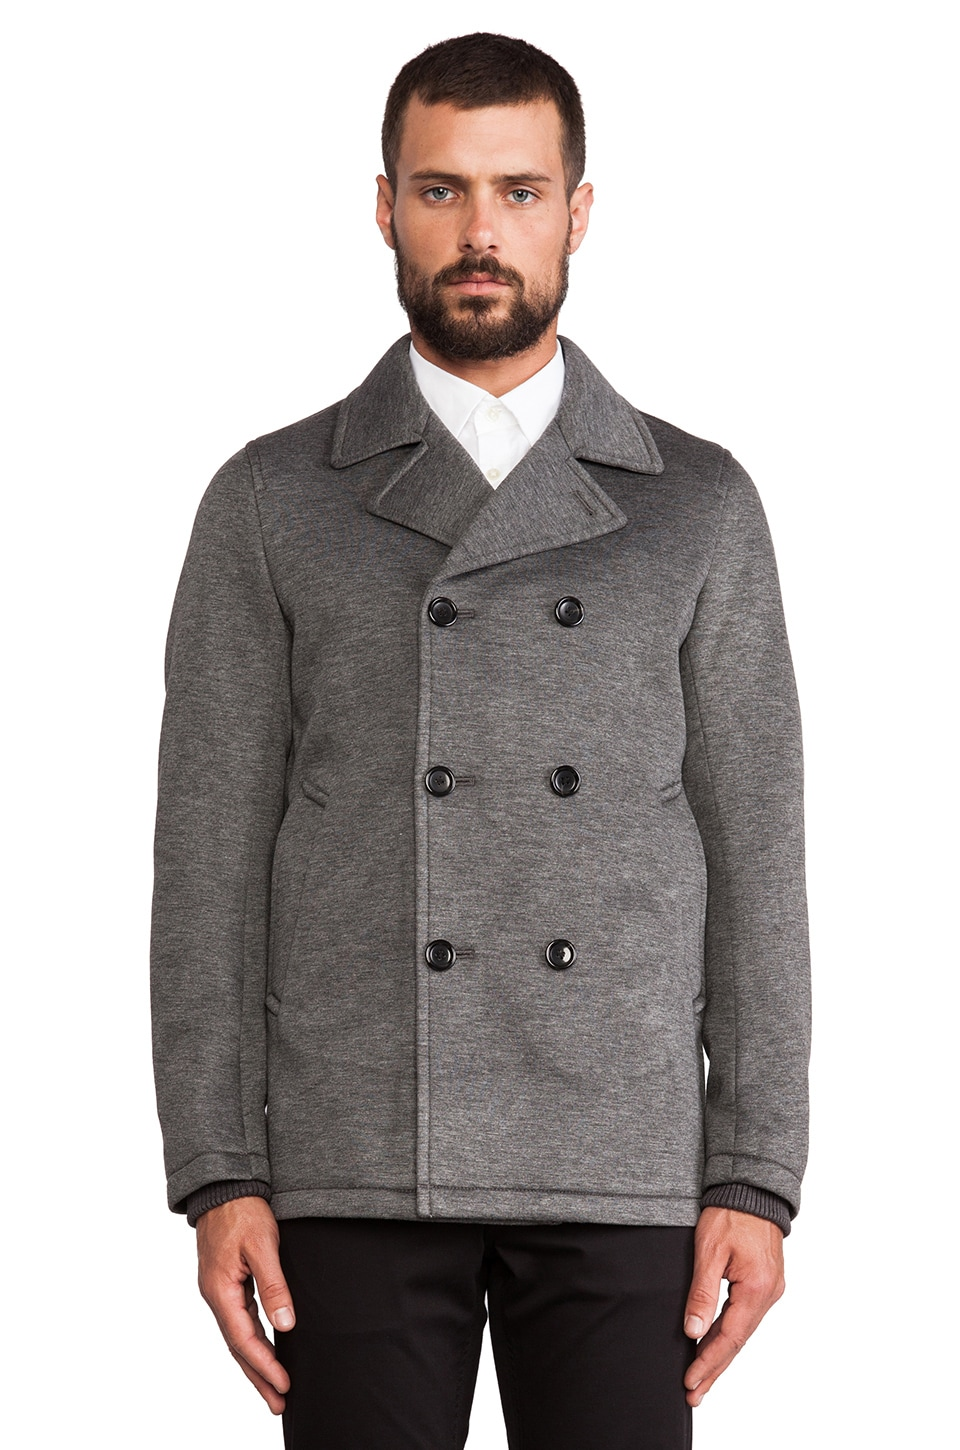 Vince Neoprene Peacoat in Heather Grey